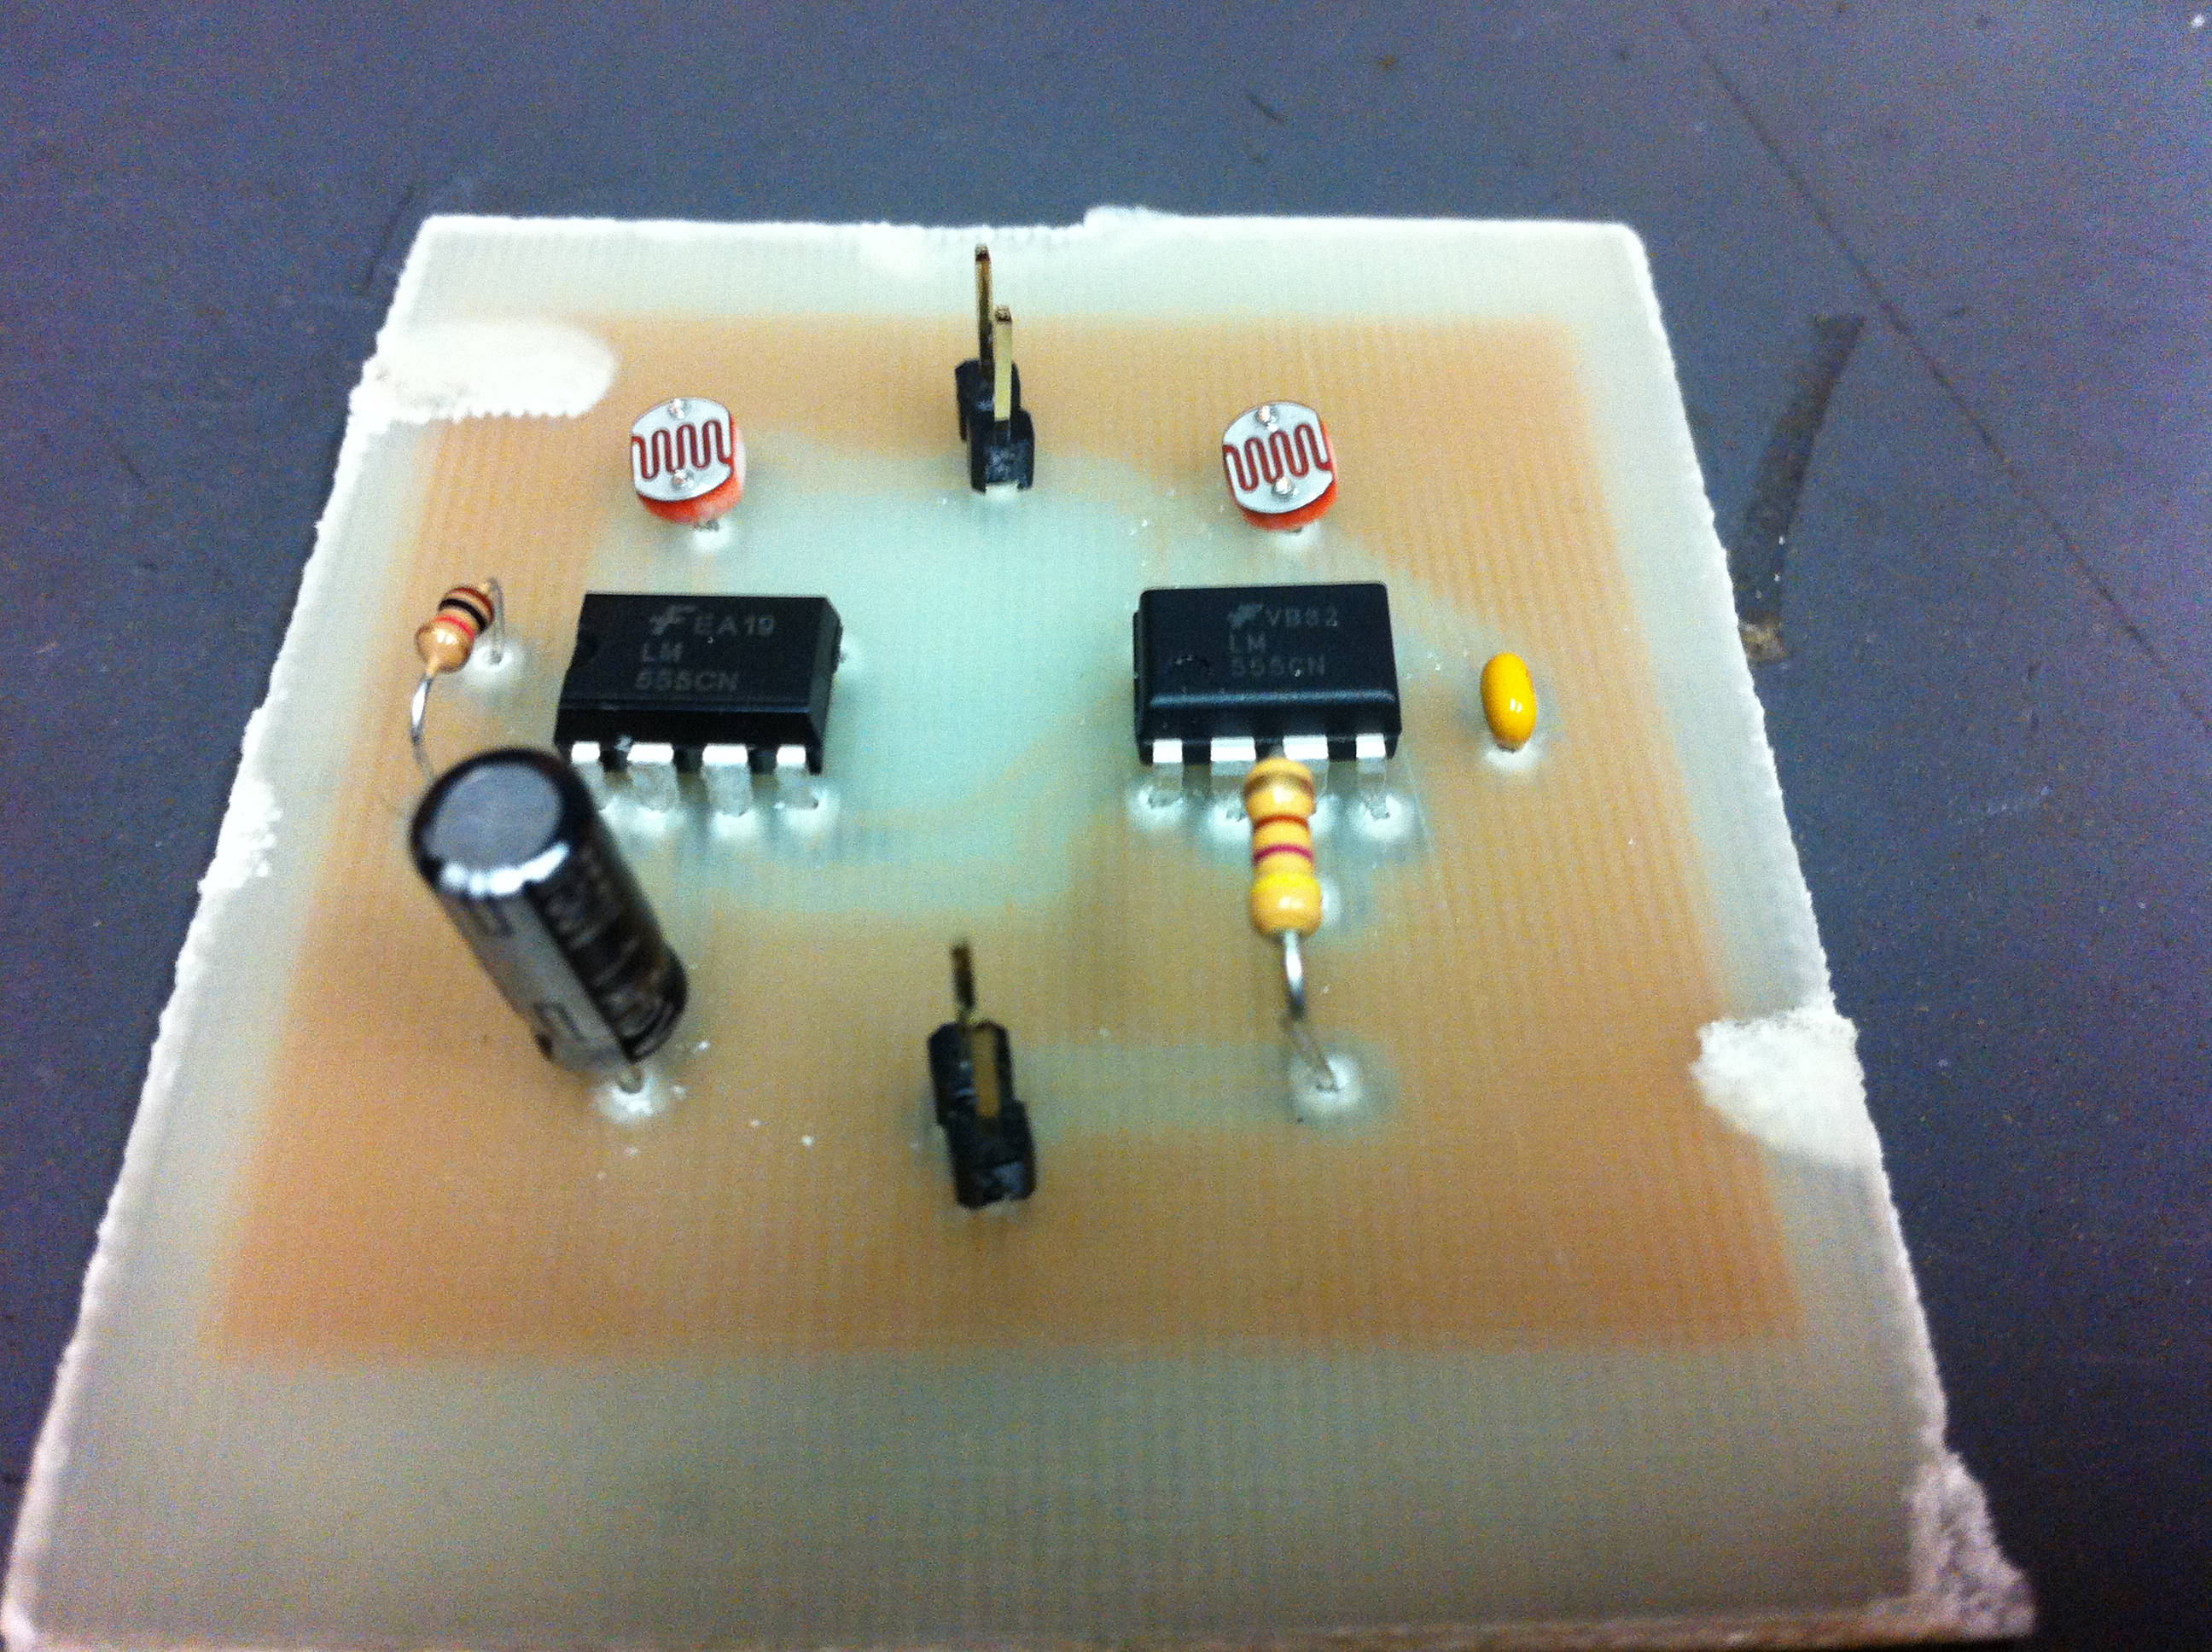 Aaron Sherwood Blog Sewn Circuit With 555 Timer Posted In Circuits Itp Grad Student Work Leave A Reply